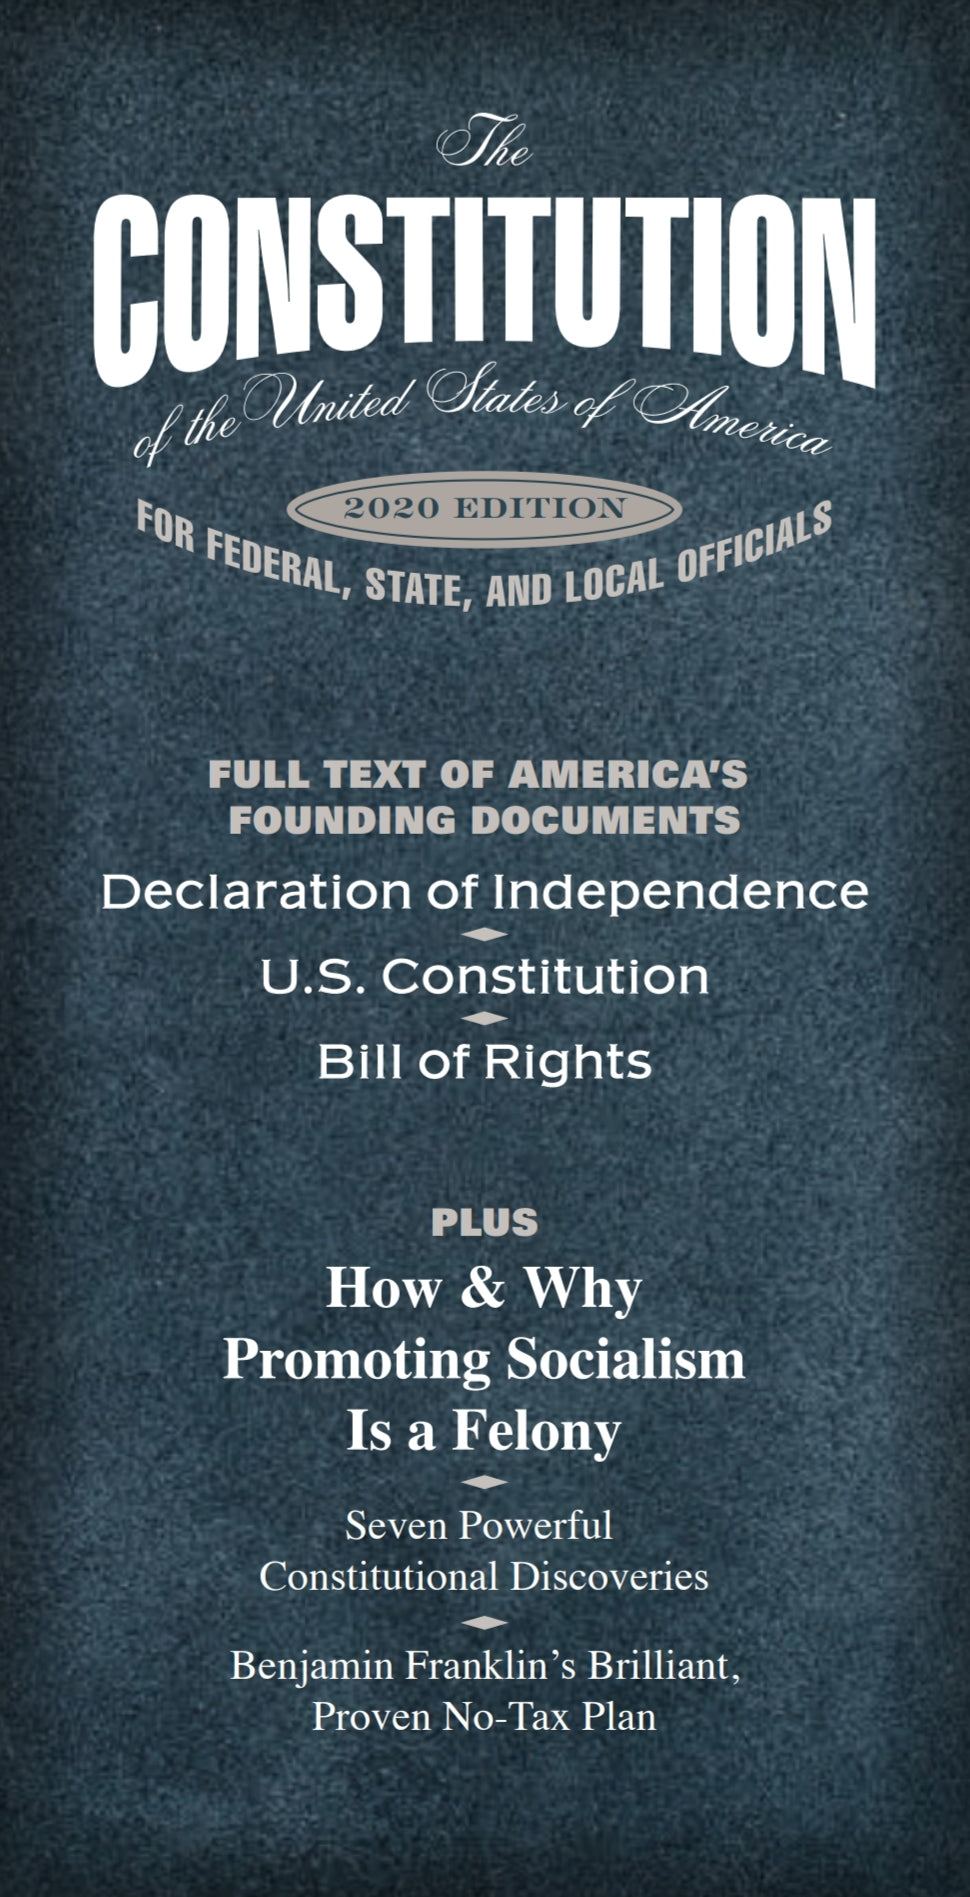 Pocket Constitution - .pdf only